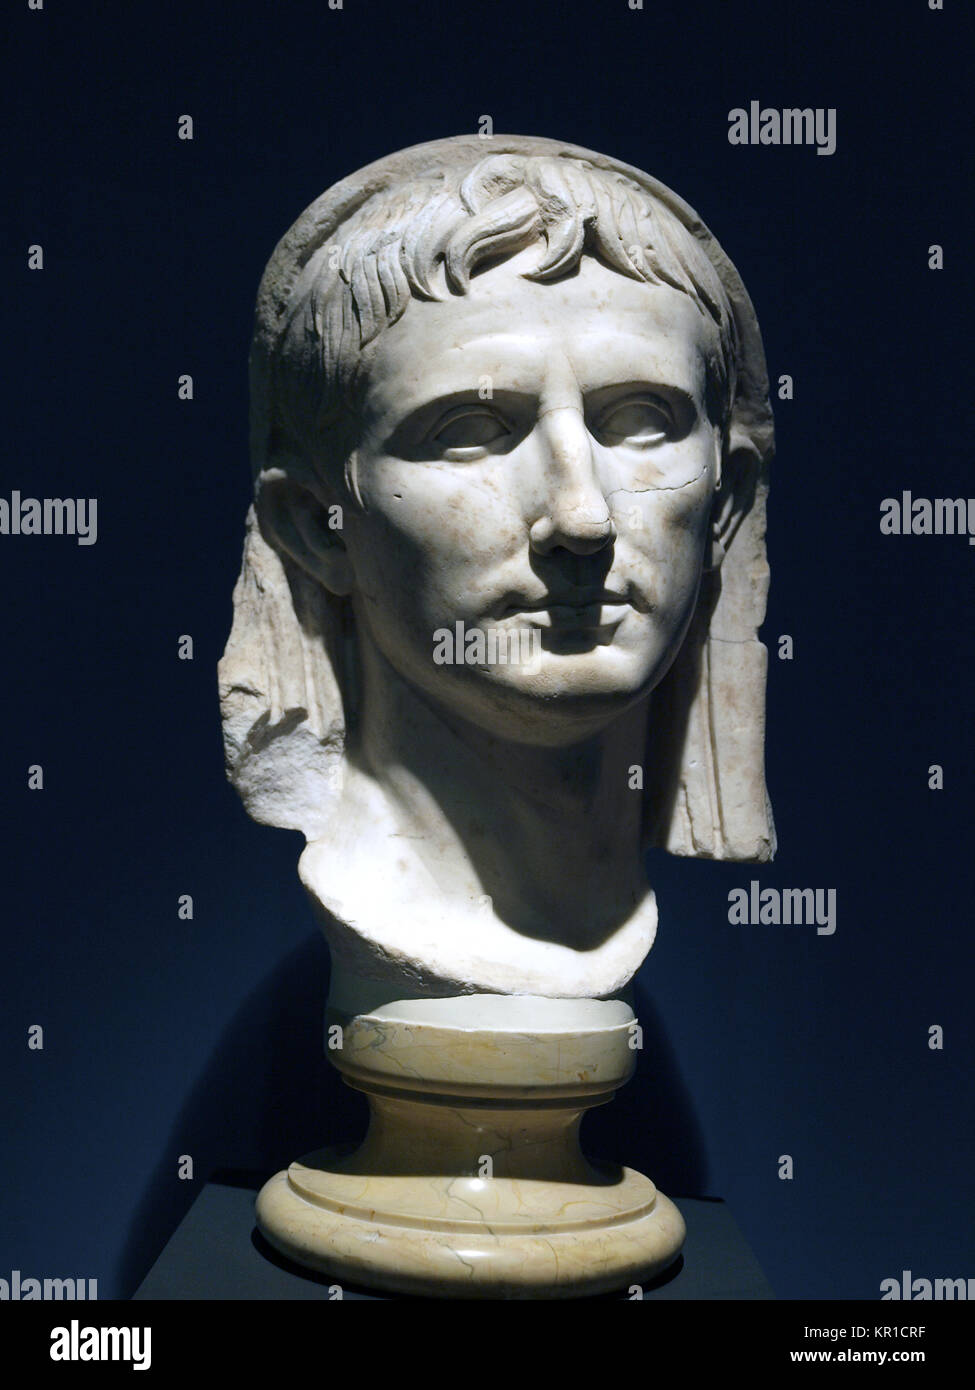 the augustan age 44 bc 14ad Arriving in rome on 6 may 44 bc the augustan era poets he first appeared on coins at the age of 19, and from about 29 bc the explosion in the.